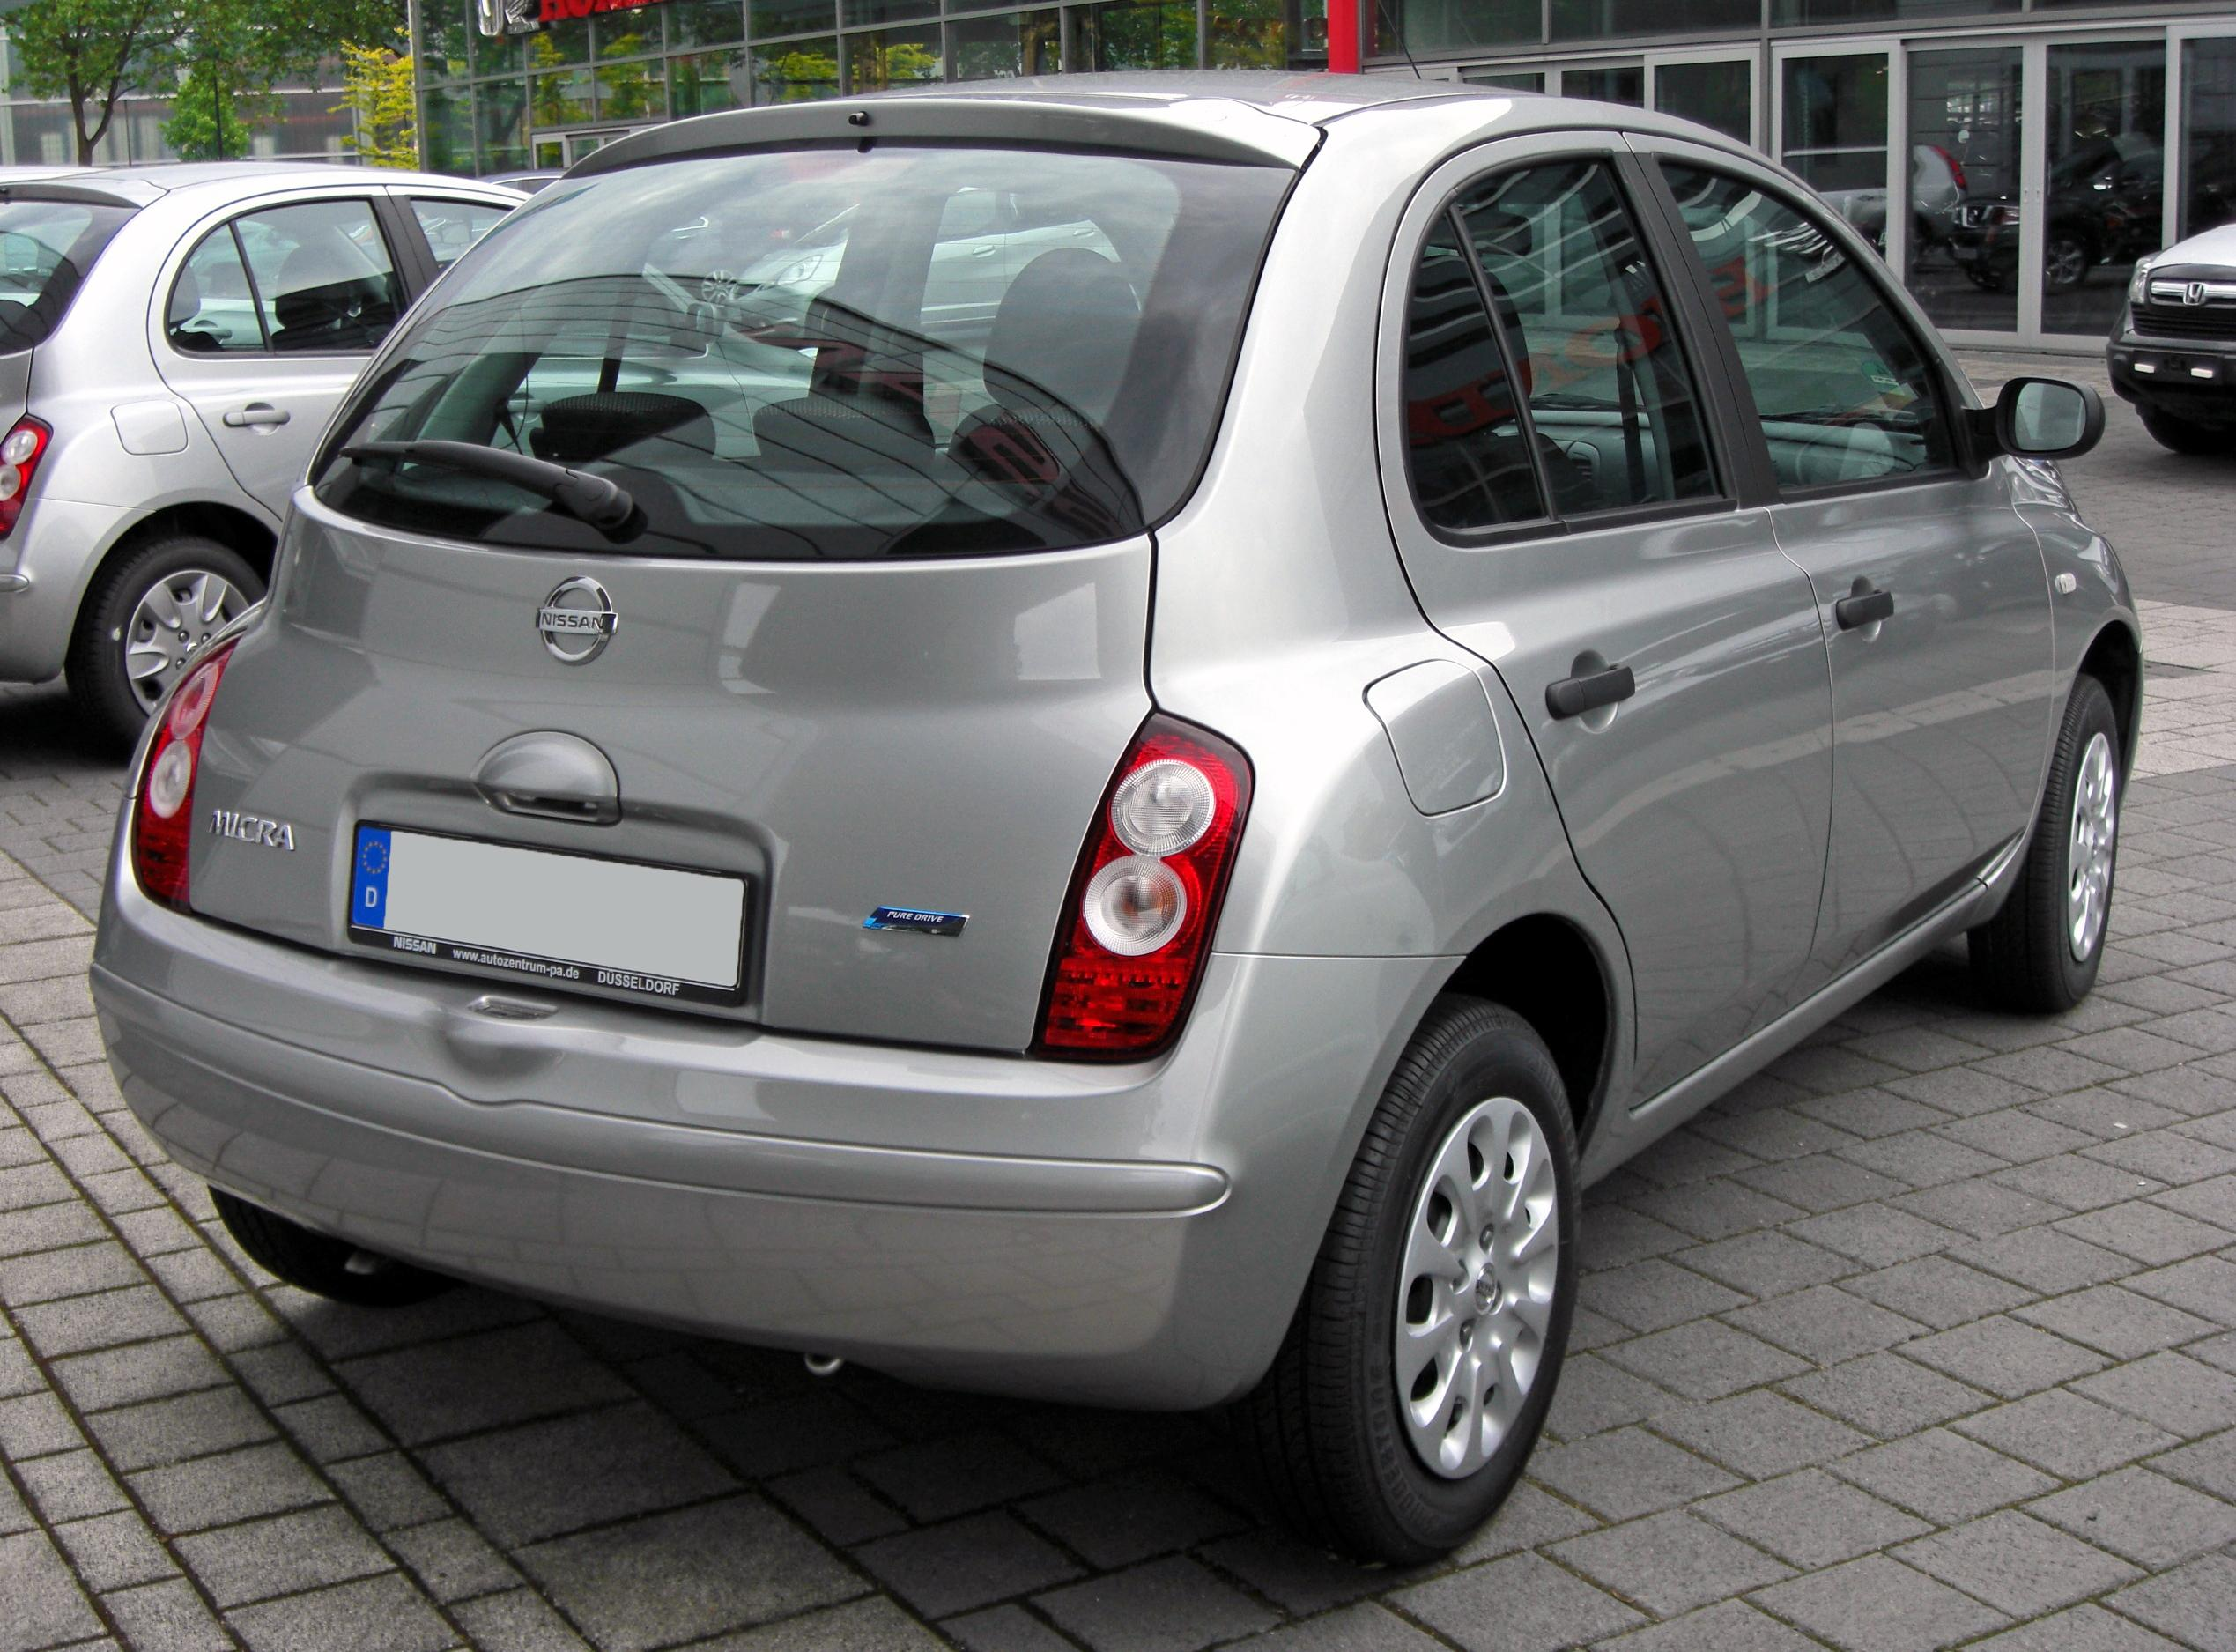 file nissan micra iii facelift 20090620 rear jpg wikimedia commons. Black Bedroom Furniture Sets. Home Design Ideas